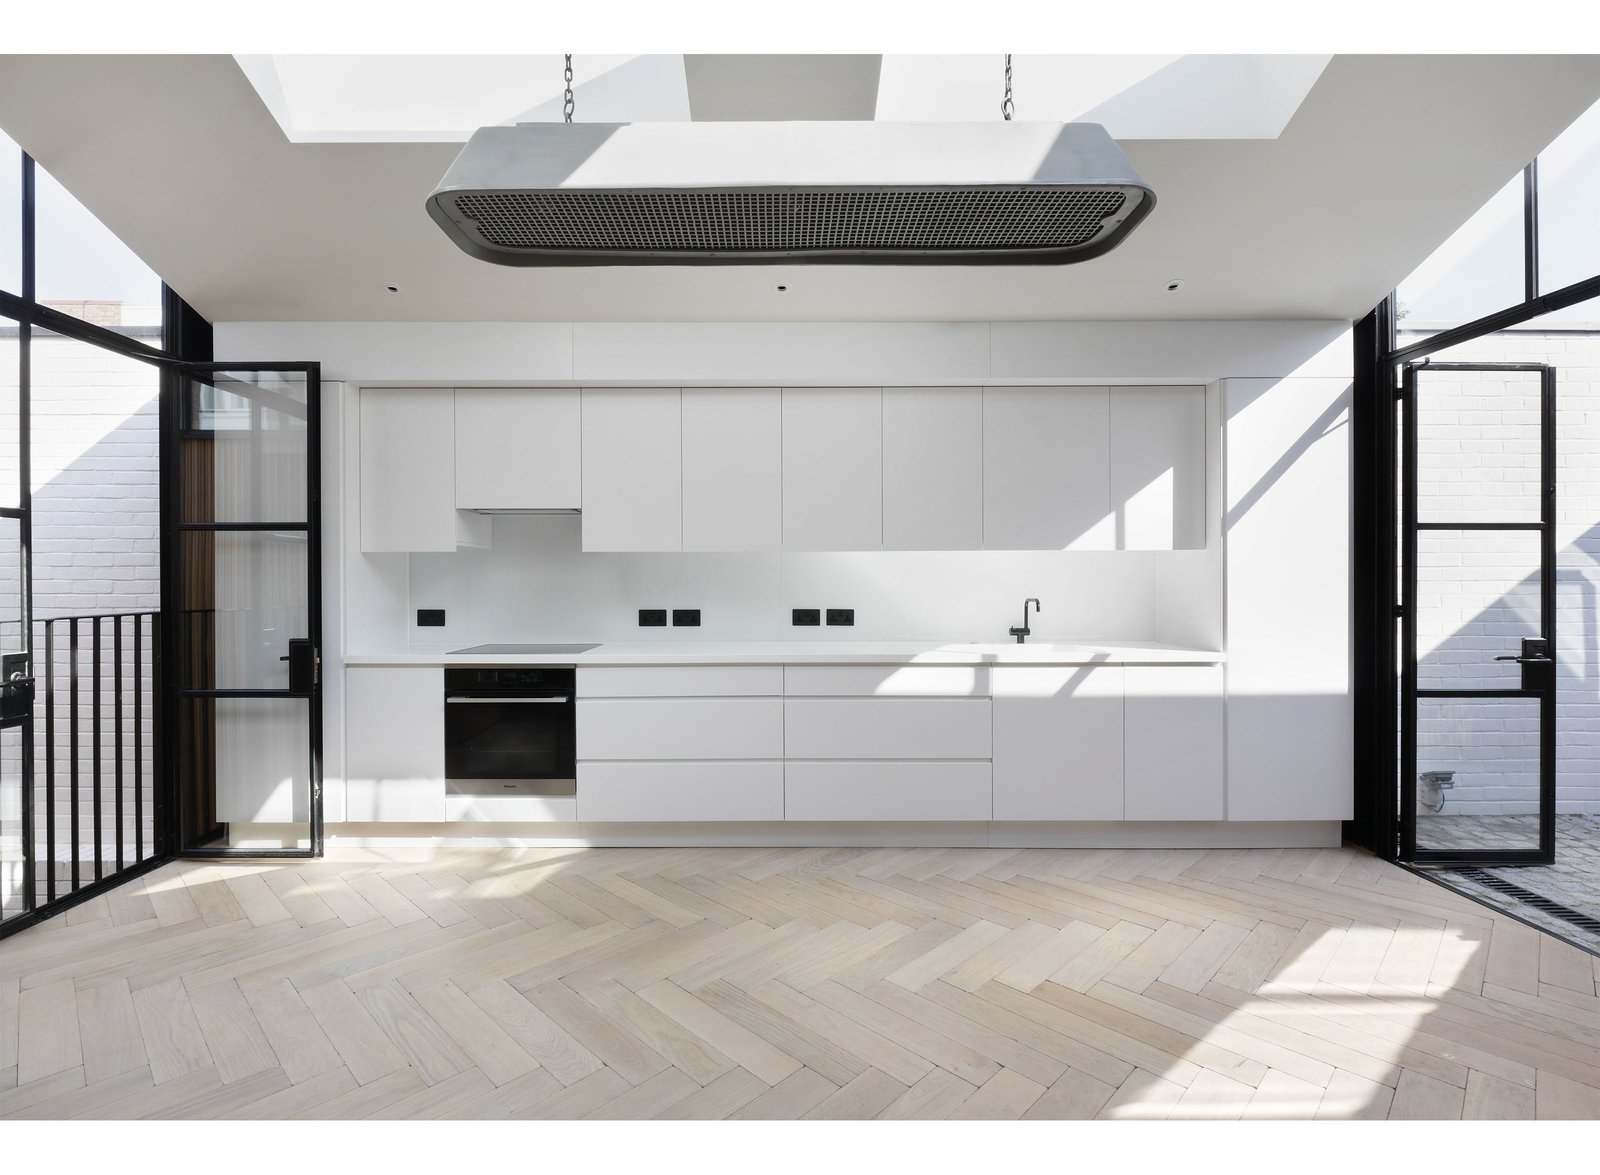 Kitchen, Wall Oven, Cooktops, Drop In Sink, Light Hardwood Floor, White Cabinet, and Recessed Lighting  Best Photos from The Courtyard House